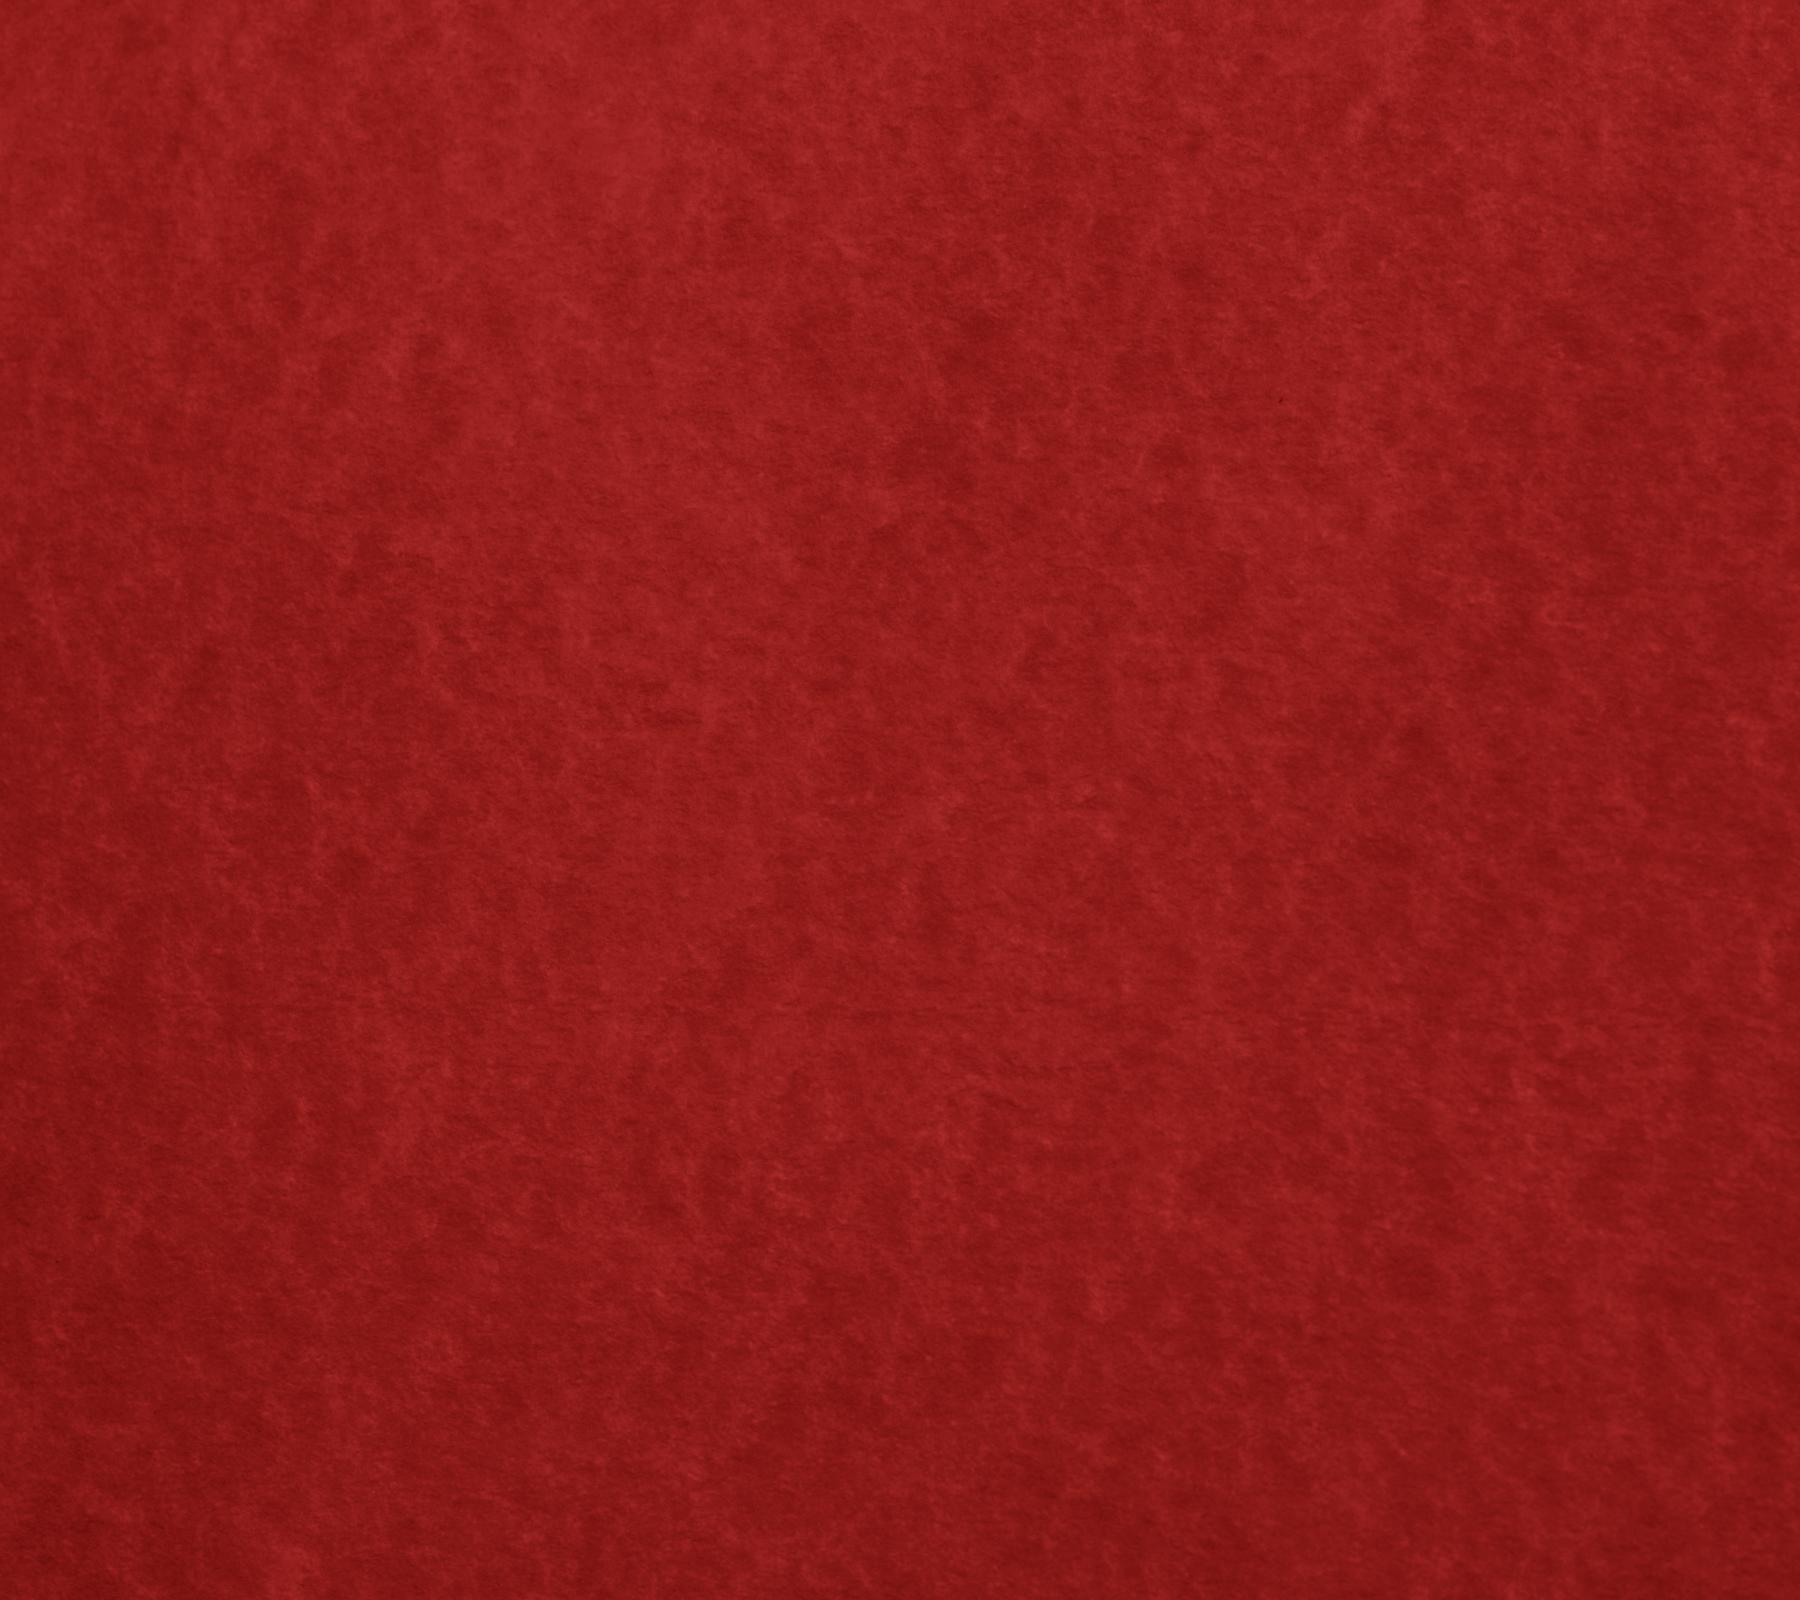 Deep Red Parchment Paper Background 1800x1600 Background Image 1800x1600